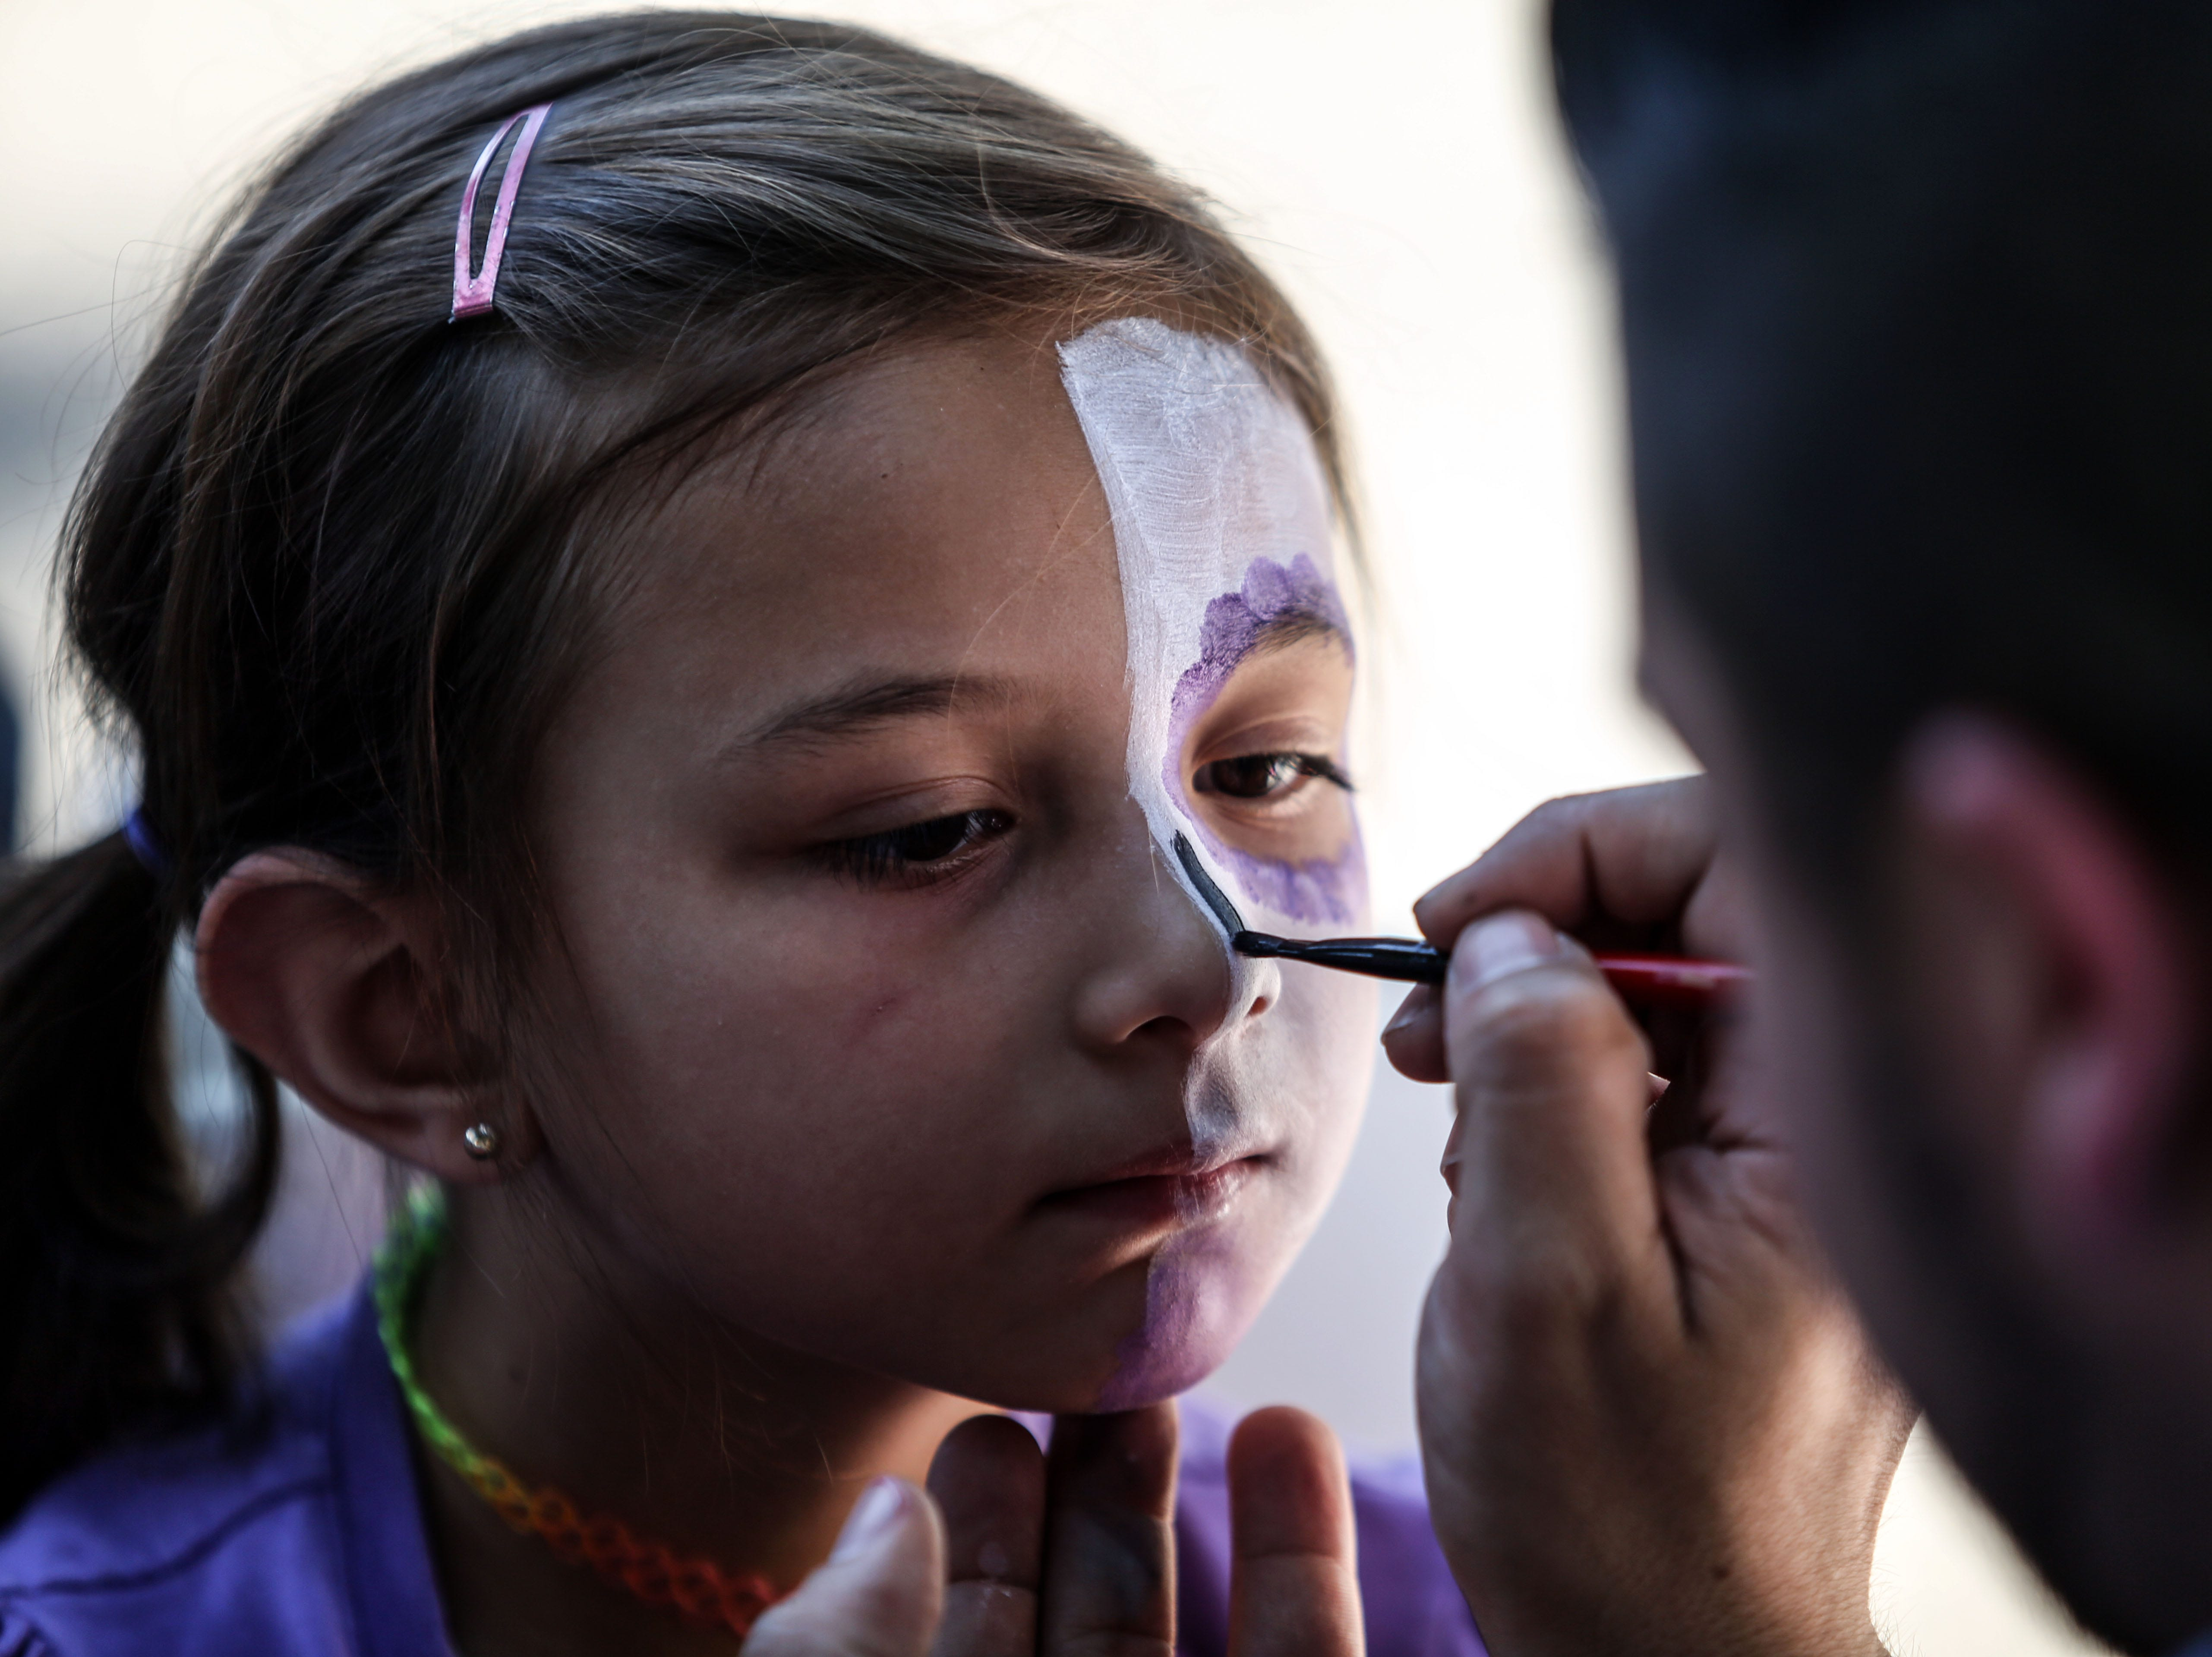 Shilo Alaniz, 5, has her face painted during Cathedral City's annual Dia de los Muertos celebration at Desert Memorial Park cemetery on Saturday, October 27, 2018.